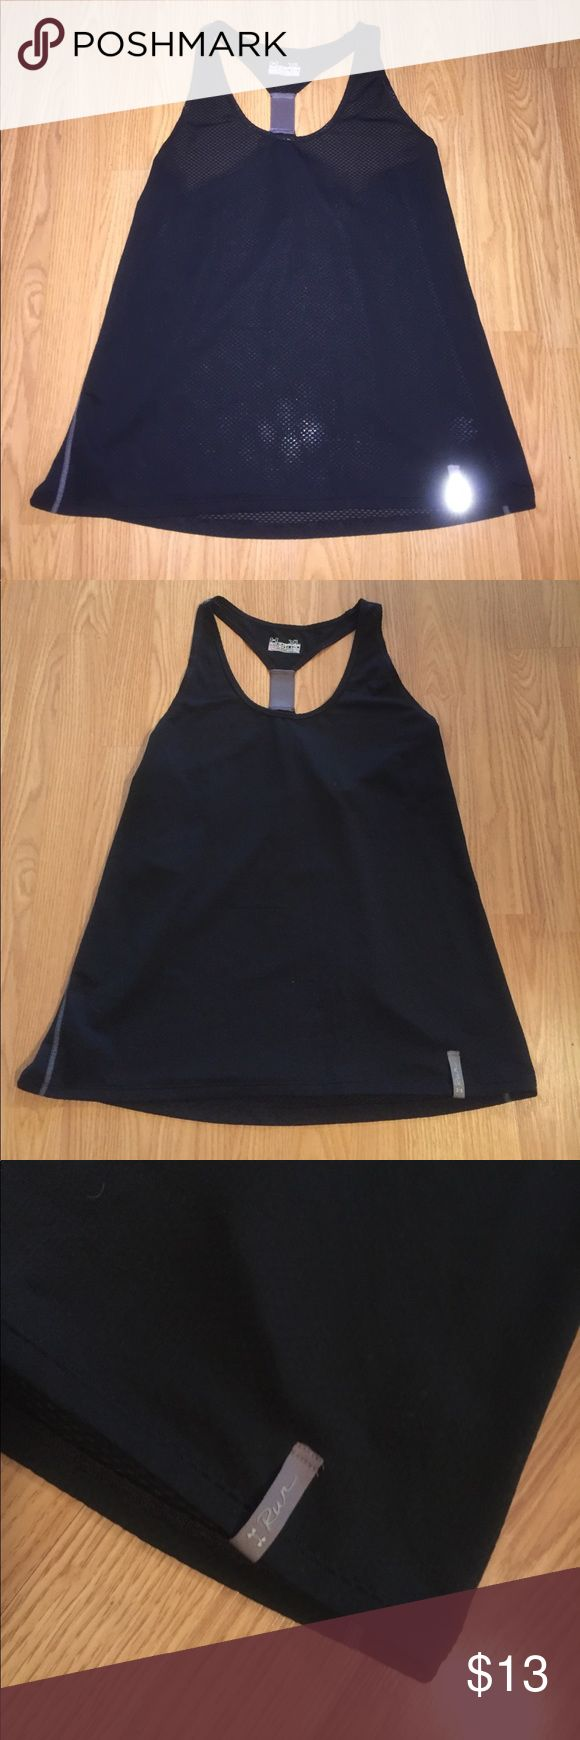 UNDER ARMOUR athletic workout tank + leggings XL Lot of 2-- 1.) UNDER ARMOUR brand. Running athletic workout racerback tank. Color-black. Ladies/ women's XL. 2.) Champion brand athletic leggings. cropped at ankle. Black with white and gray across front of legs. Ladies /women XL. Both items are in great condition! Under Armour Tops Tank Tops